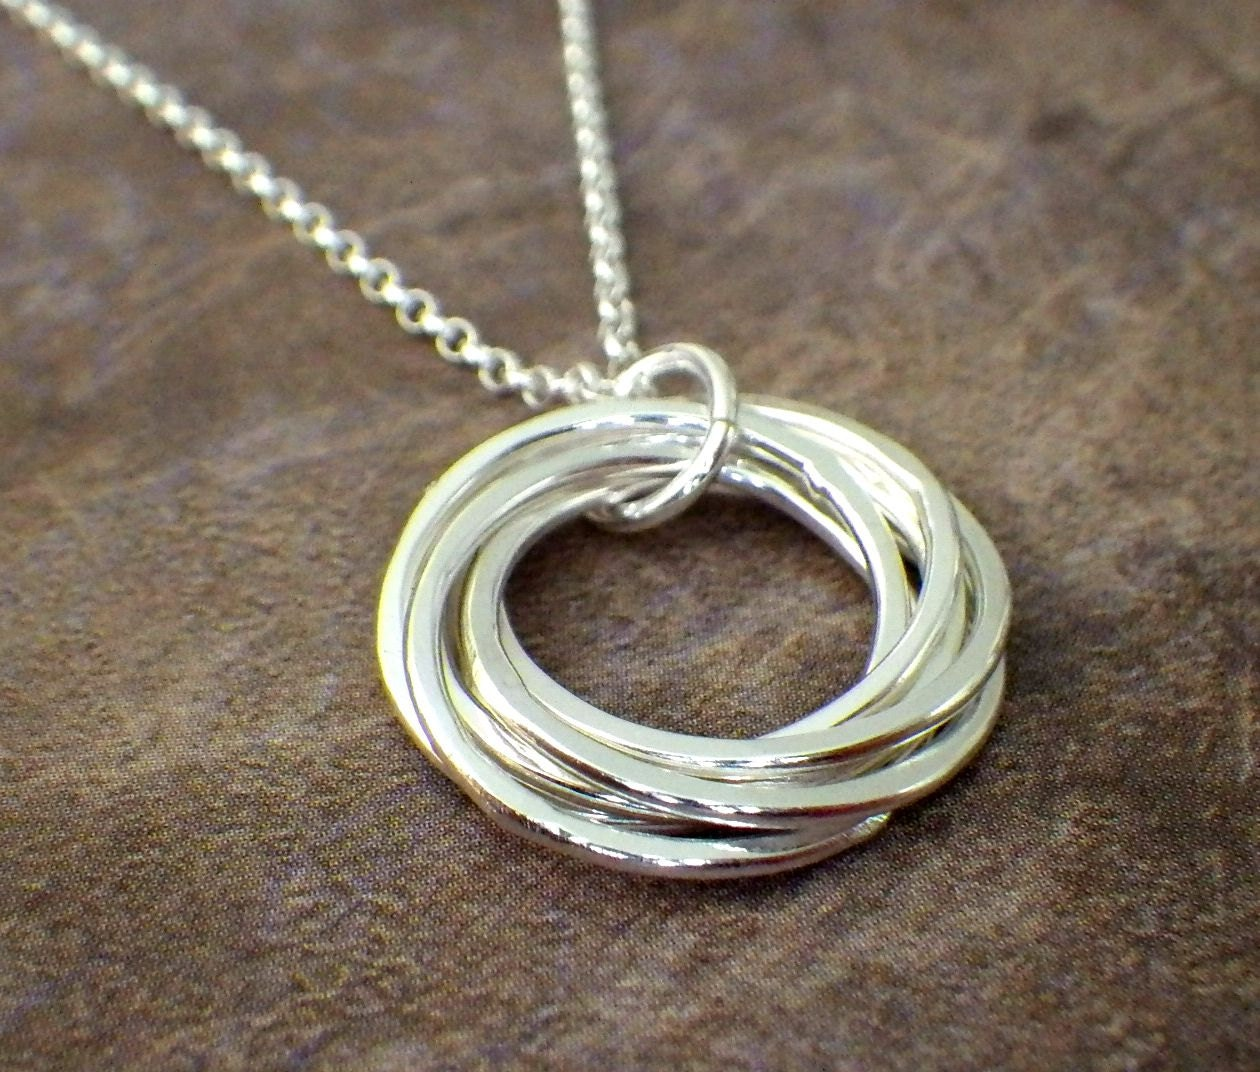 7 rings necklace interlocking rings 70th birthday necklace